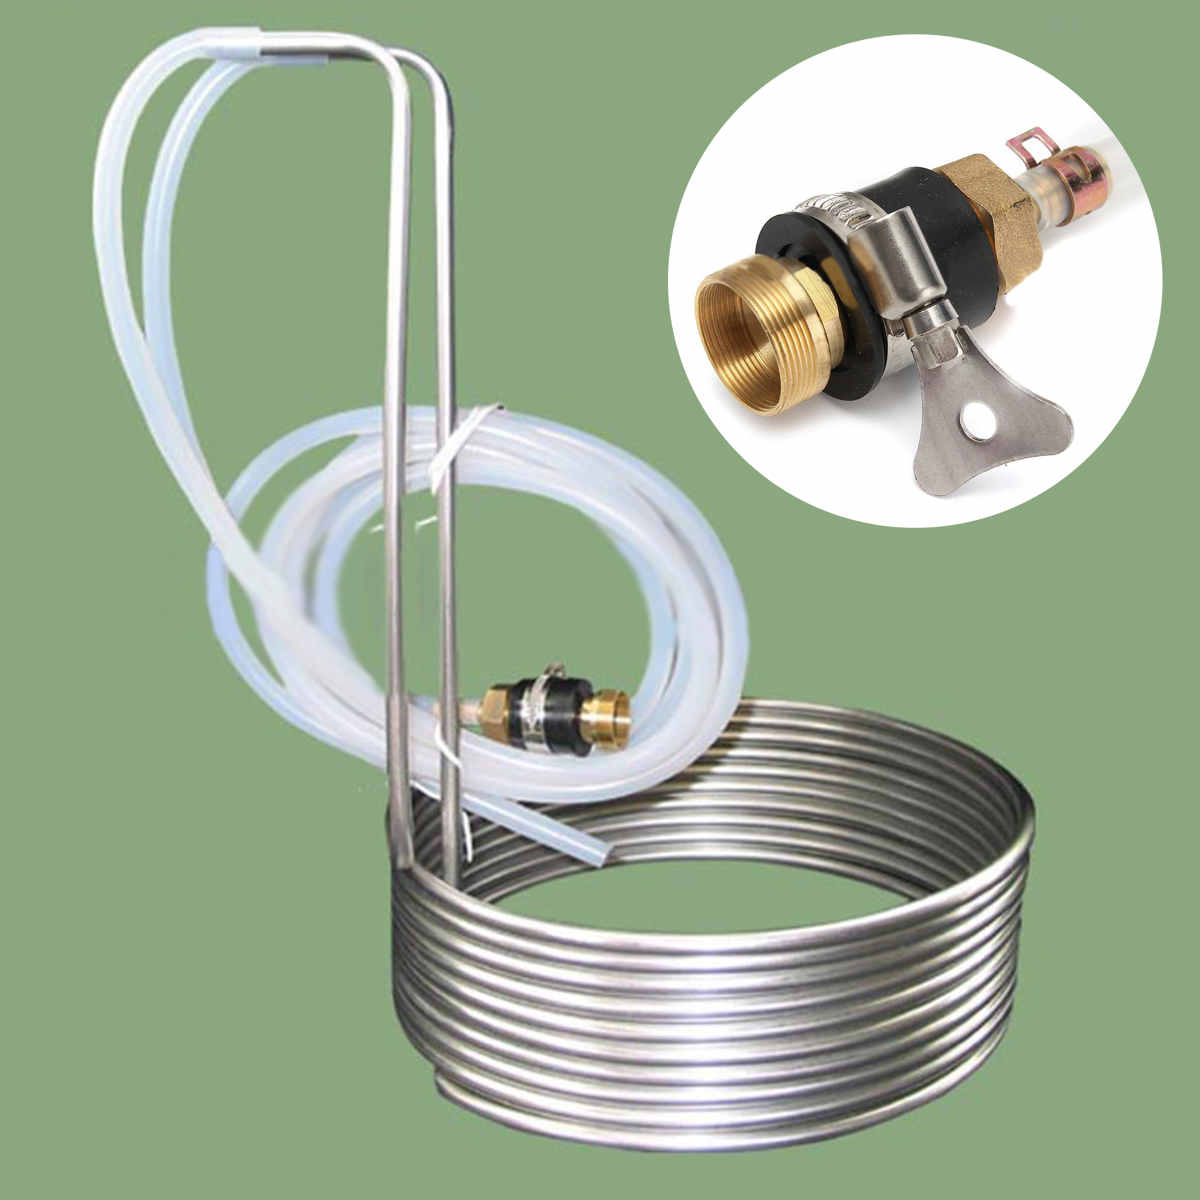 304 Stainless Steel Immersion Wort Chiller Tube Home Brewing Super Efficient Wort Chiller Home Wine Making Machine Part New